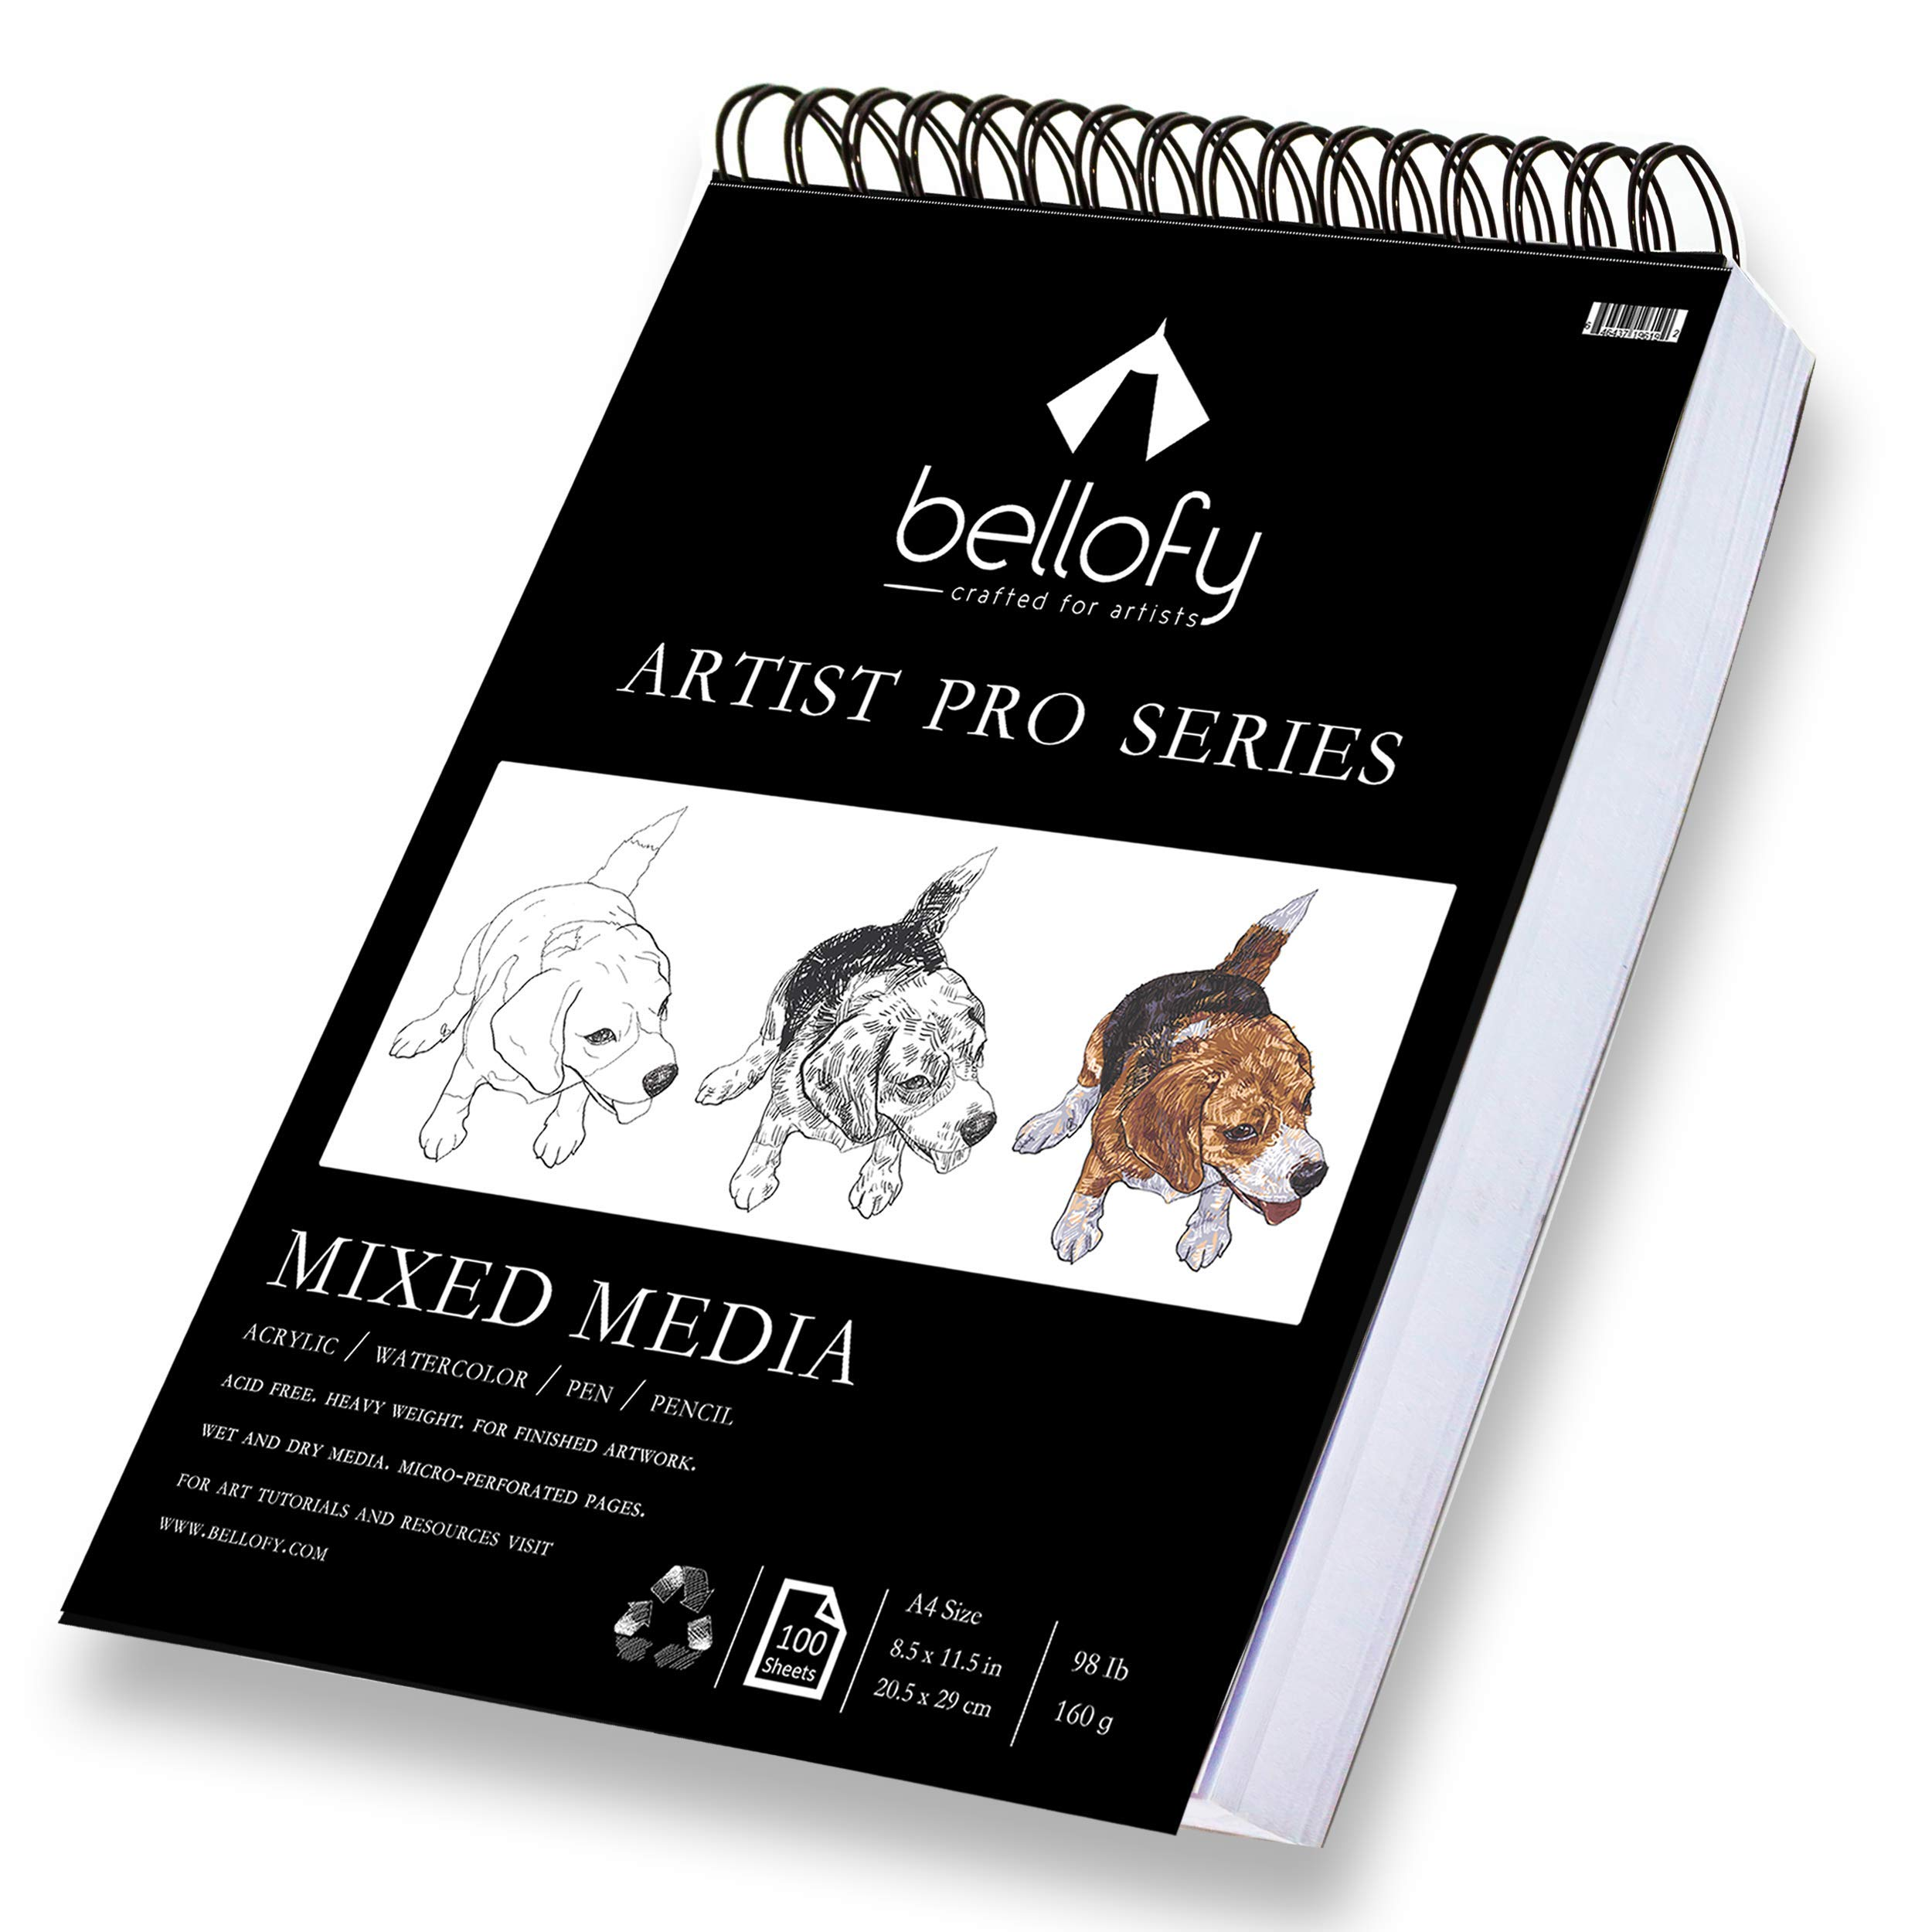 Bellofy 100-Sheet Sketchpad Artist Pro, Watercolor, Acrylic Art Pad for Sketching, Ink Sketch Book, Coloring Notebook - 98 Ib/160 g/m2-9 x 12 in Multi-Media Spiral Notebook, Drawing Paper, Drawing Pad by Bellofy